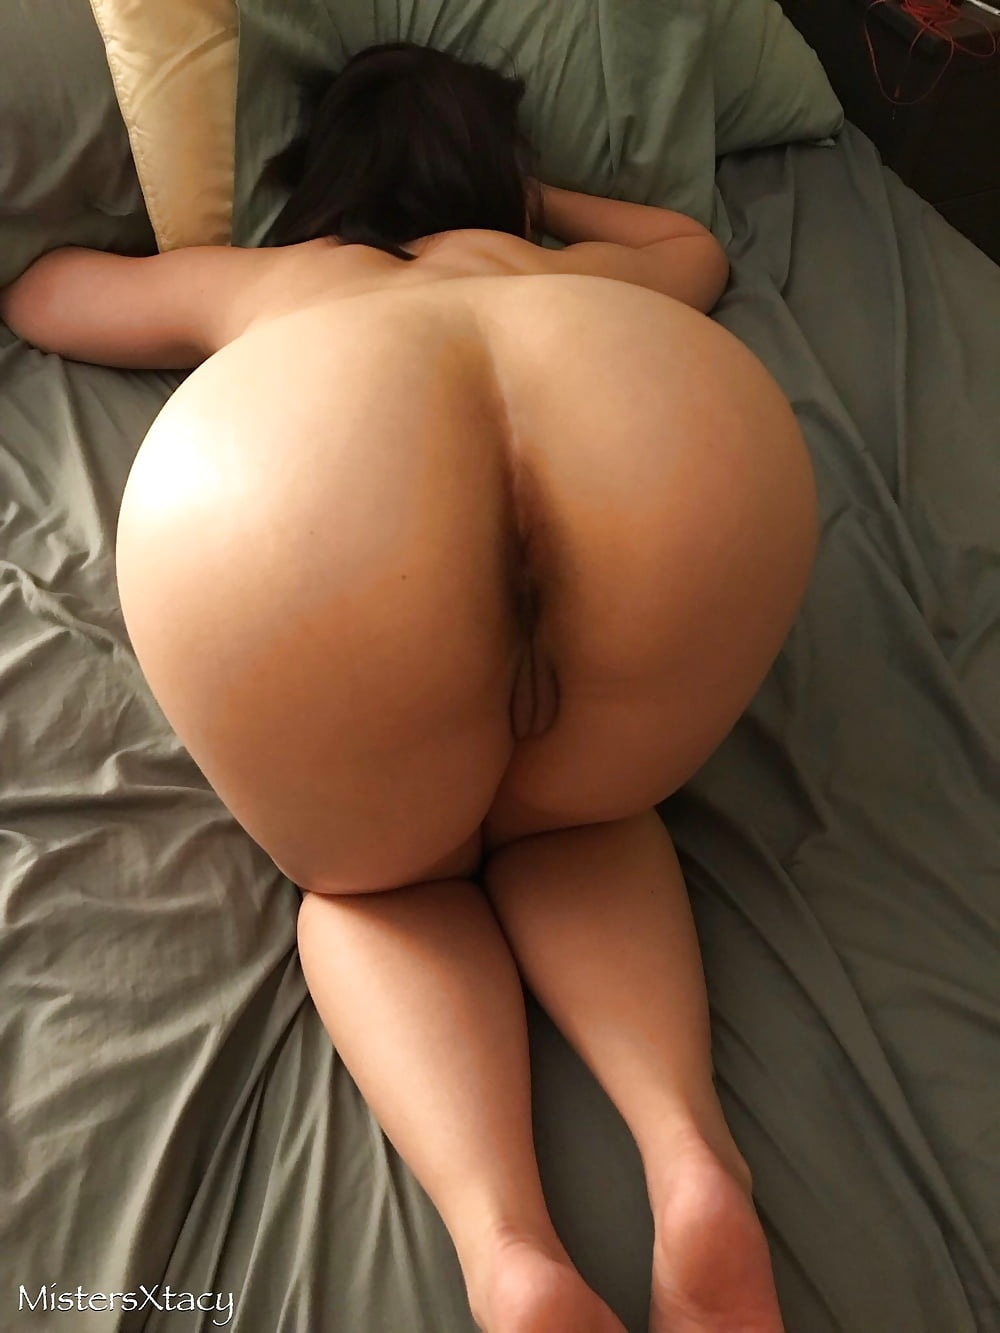 sex-videos-nude-girl-with-big-butt-bent-over-images-boy-and